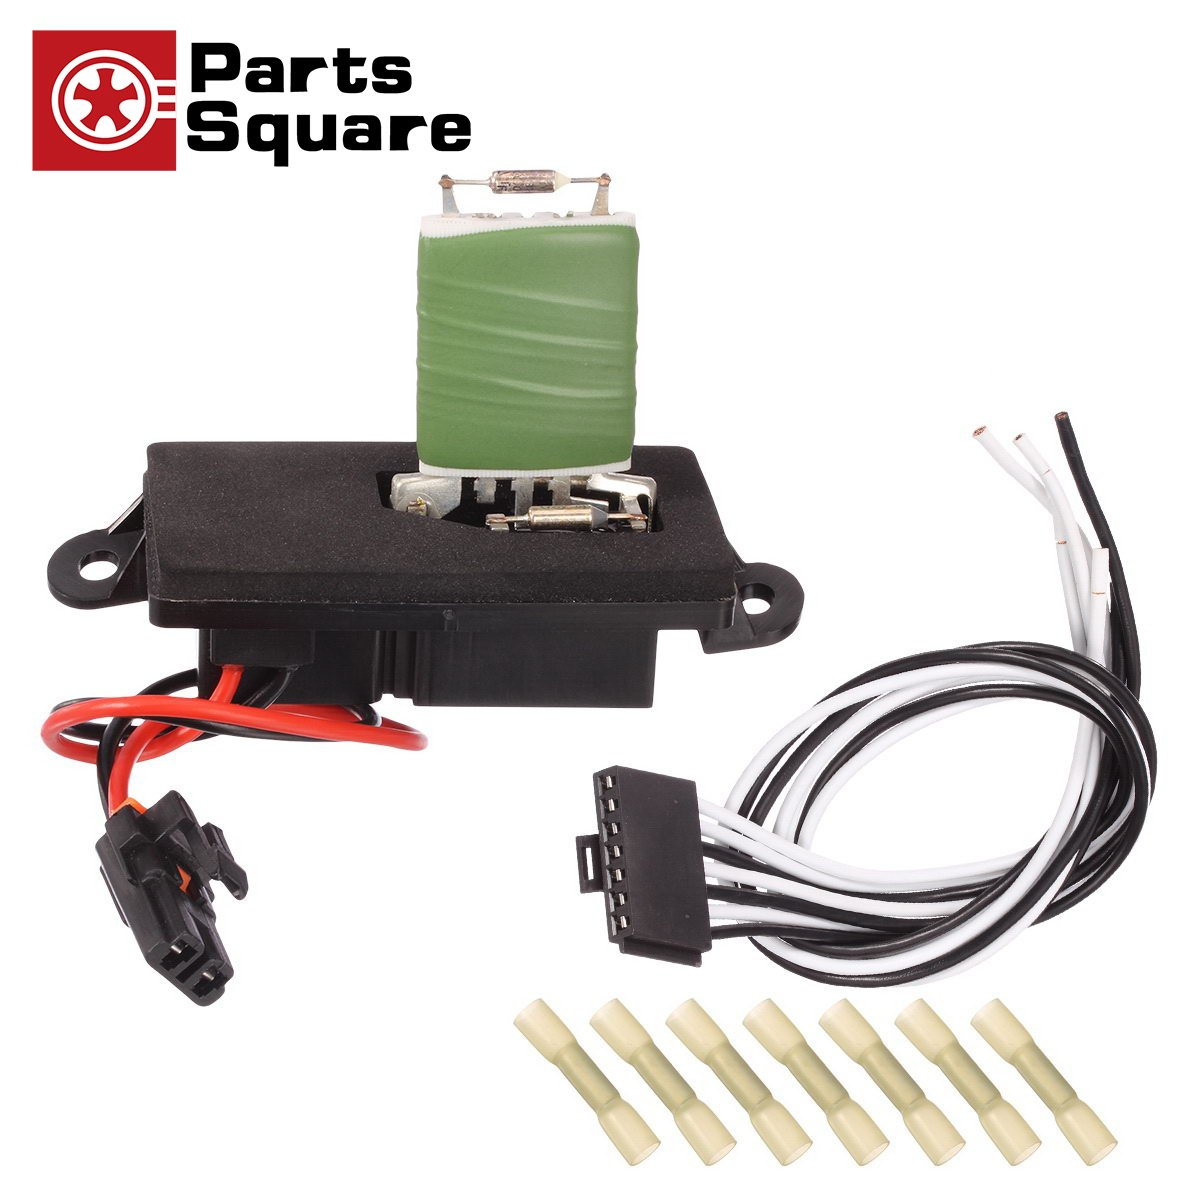 Partssquare Manual Hvac Blower Motor Resistor 15305077 2002 Chevy Tahoe Heater Wiring 15862656 Wire Harness Connector Replacement For 2003 2004 2005 2006 Chevrolet